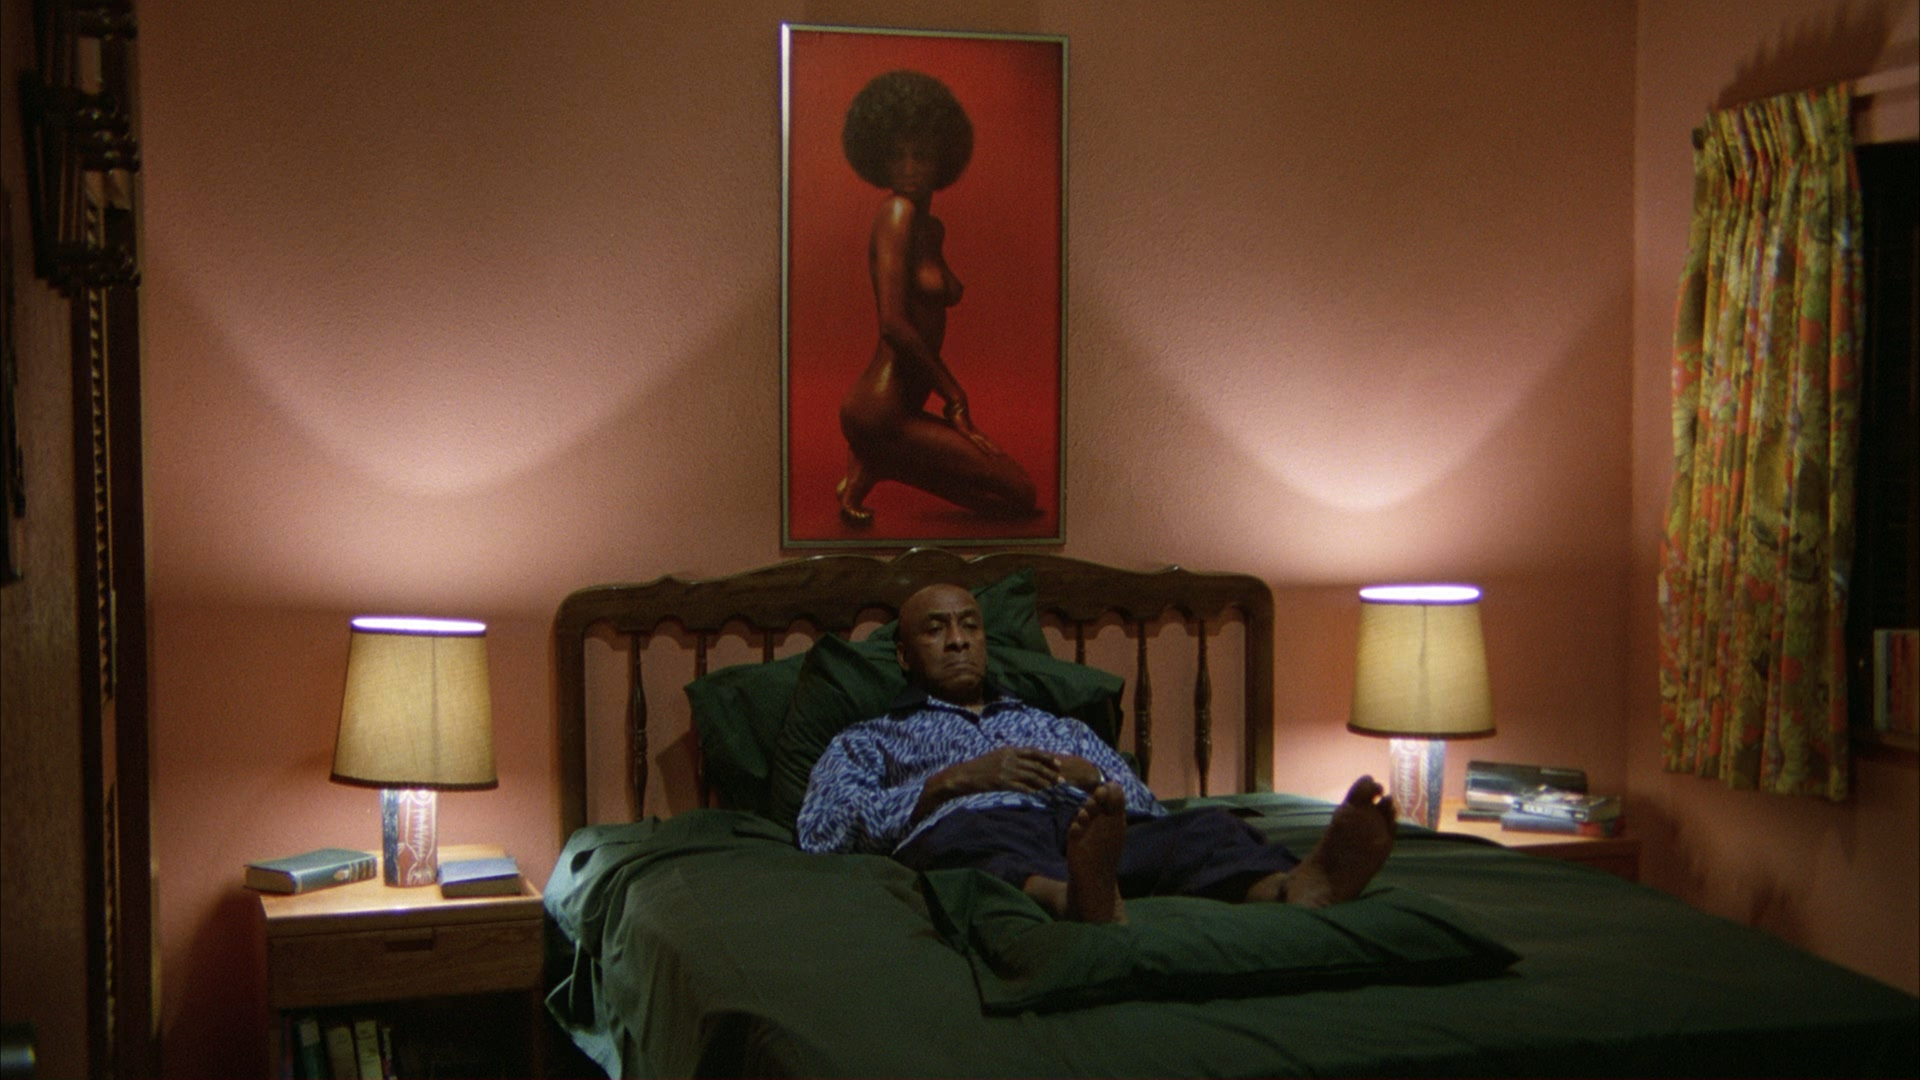 1920x1080 - Scatman Crothers Wallpapers 3